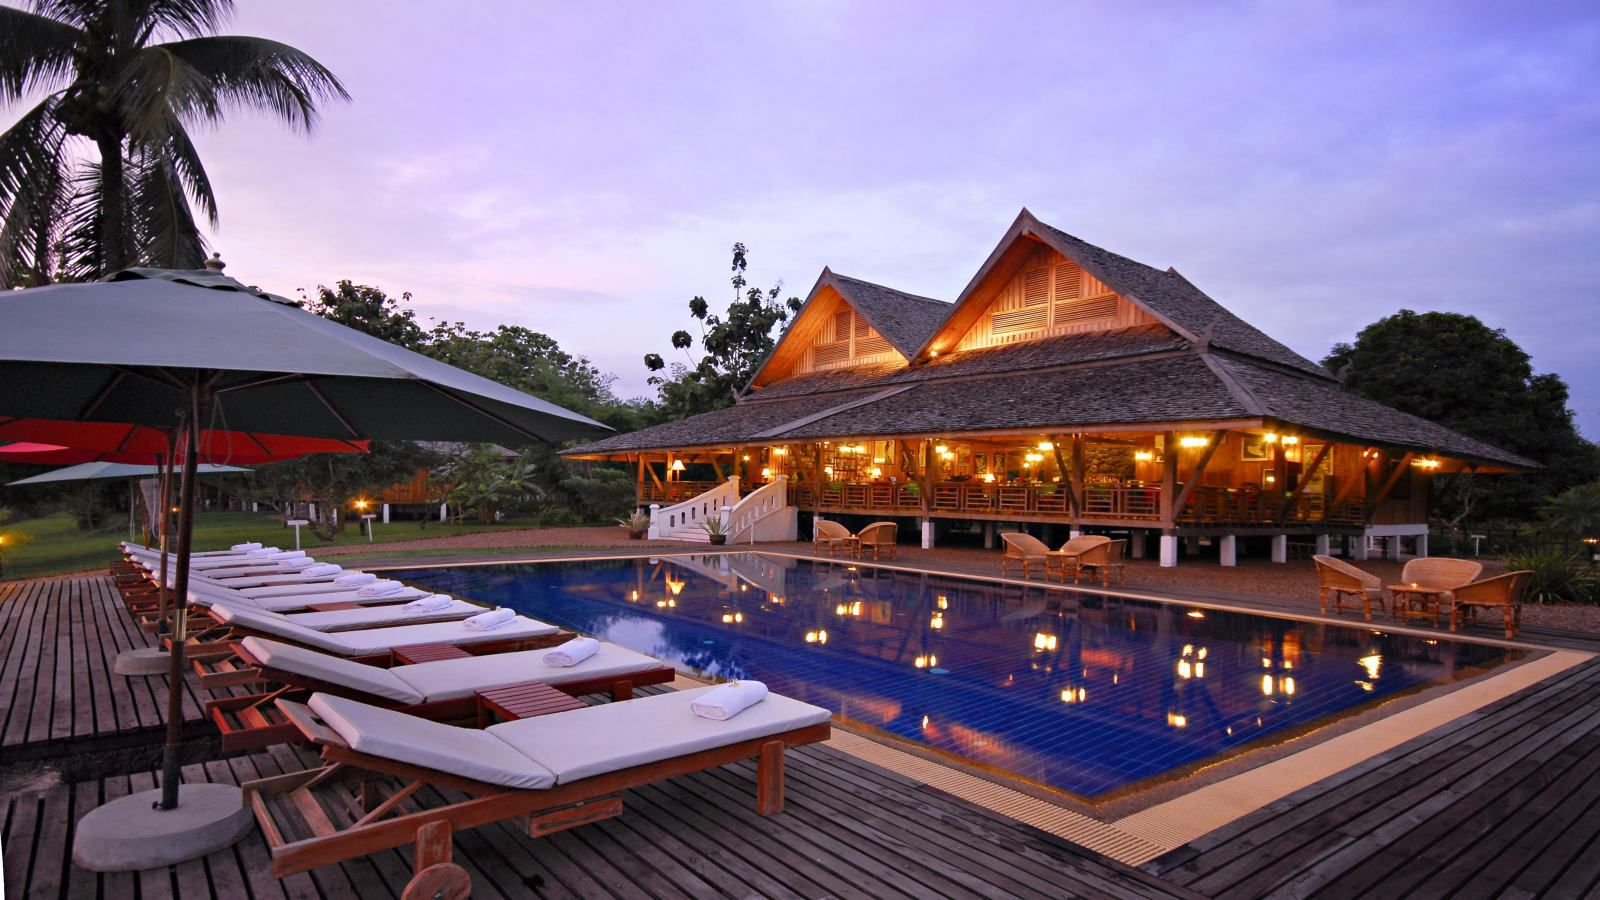 la-folie-lodge-champassal-laos-5